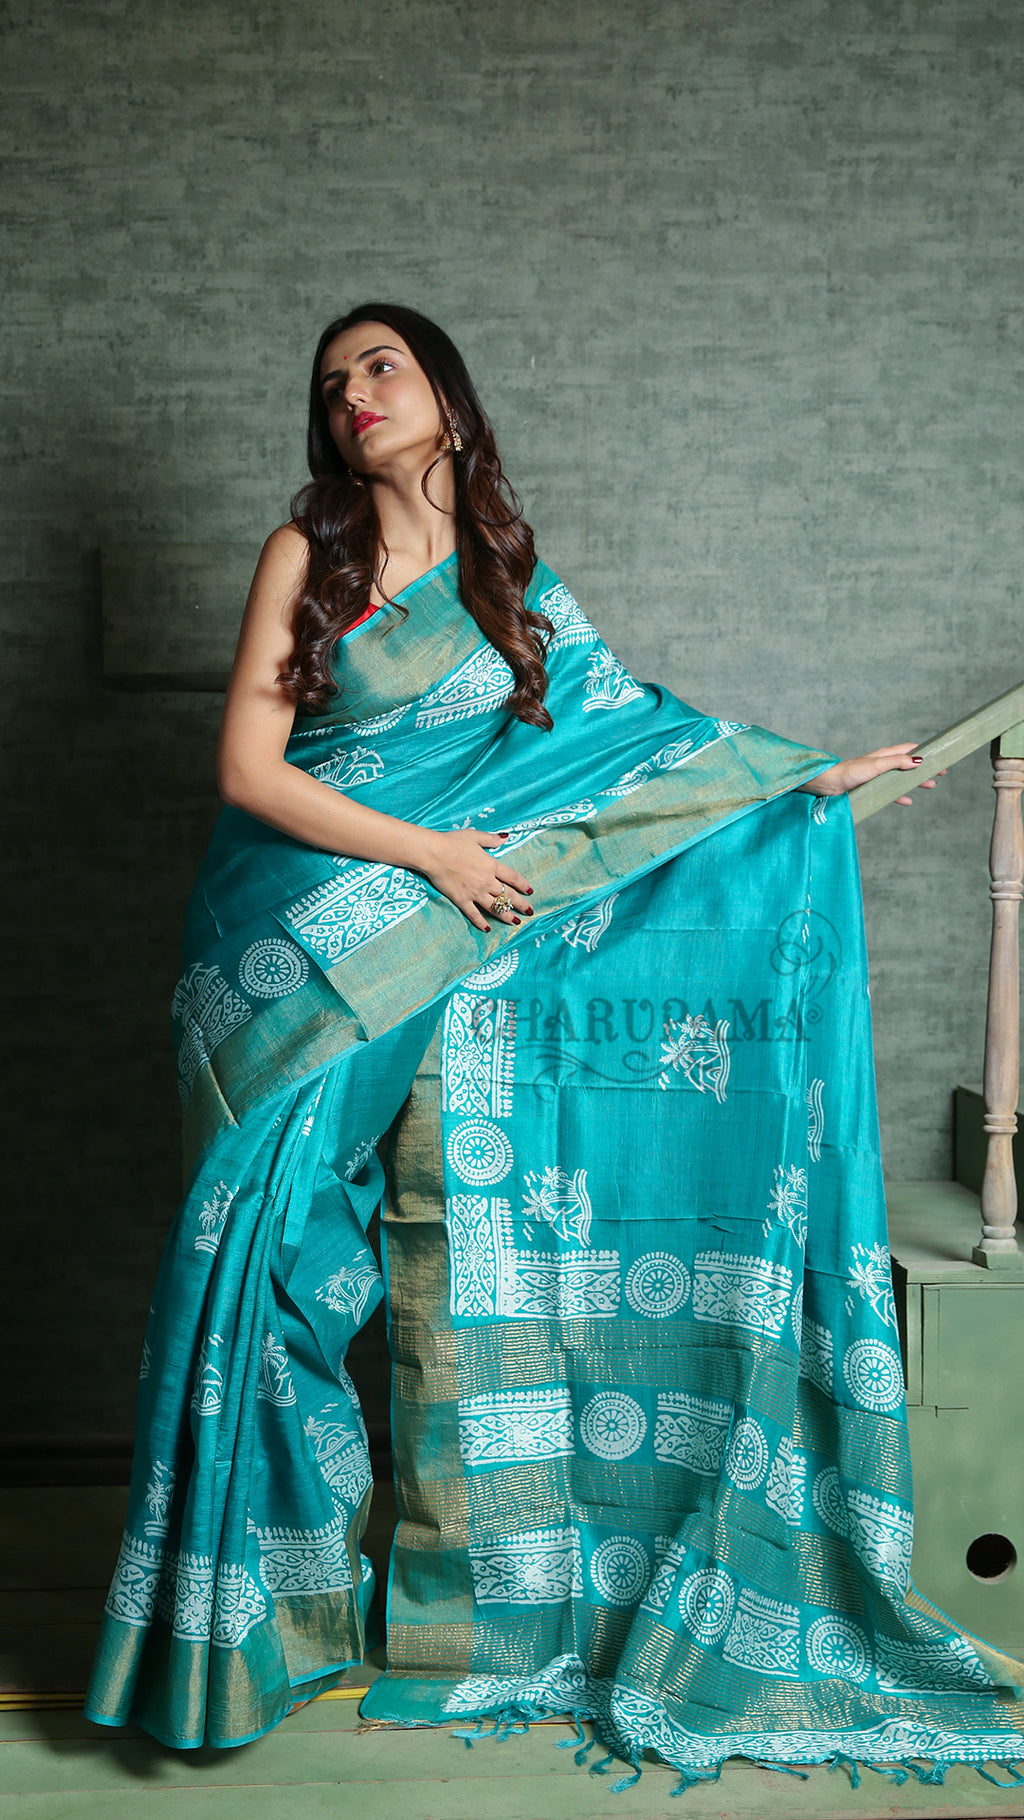 Cyan Blue Zari Border tussar With White Floral Print